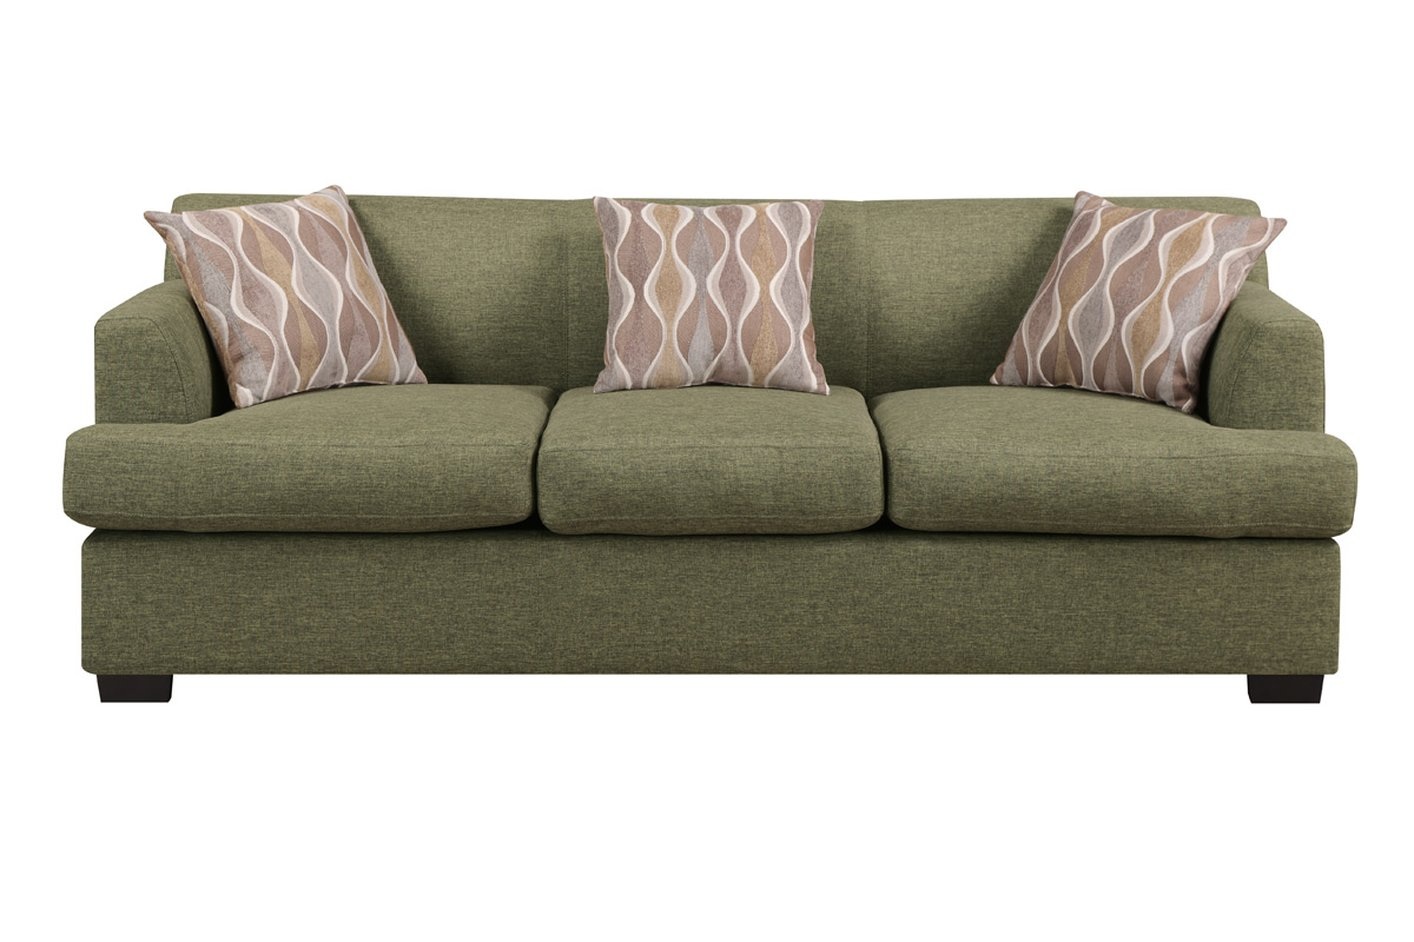 Poundex montreal iv f7978 green fabric sofa steal a sofa for Couch and loveseat